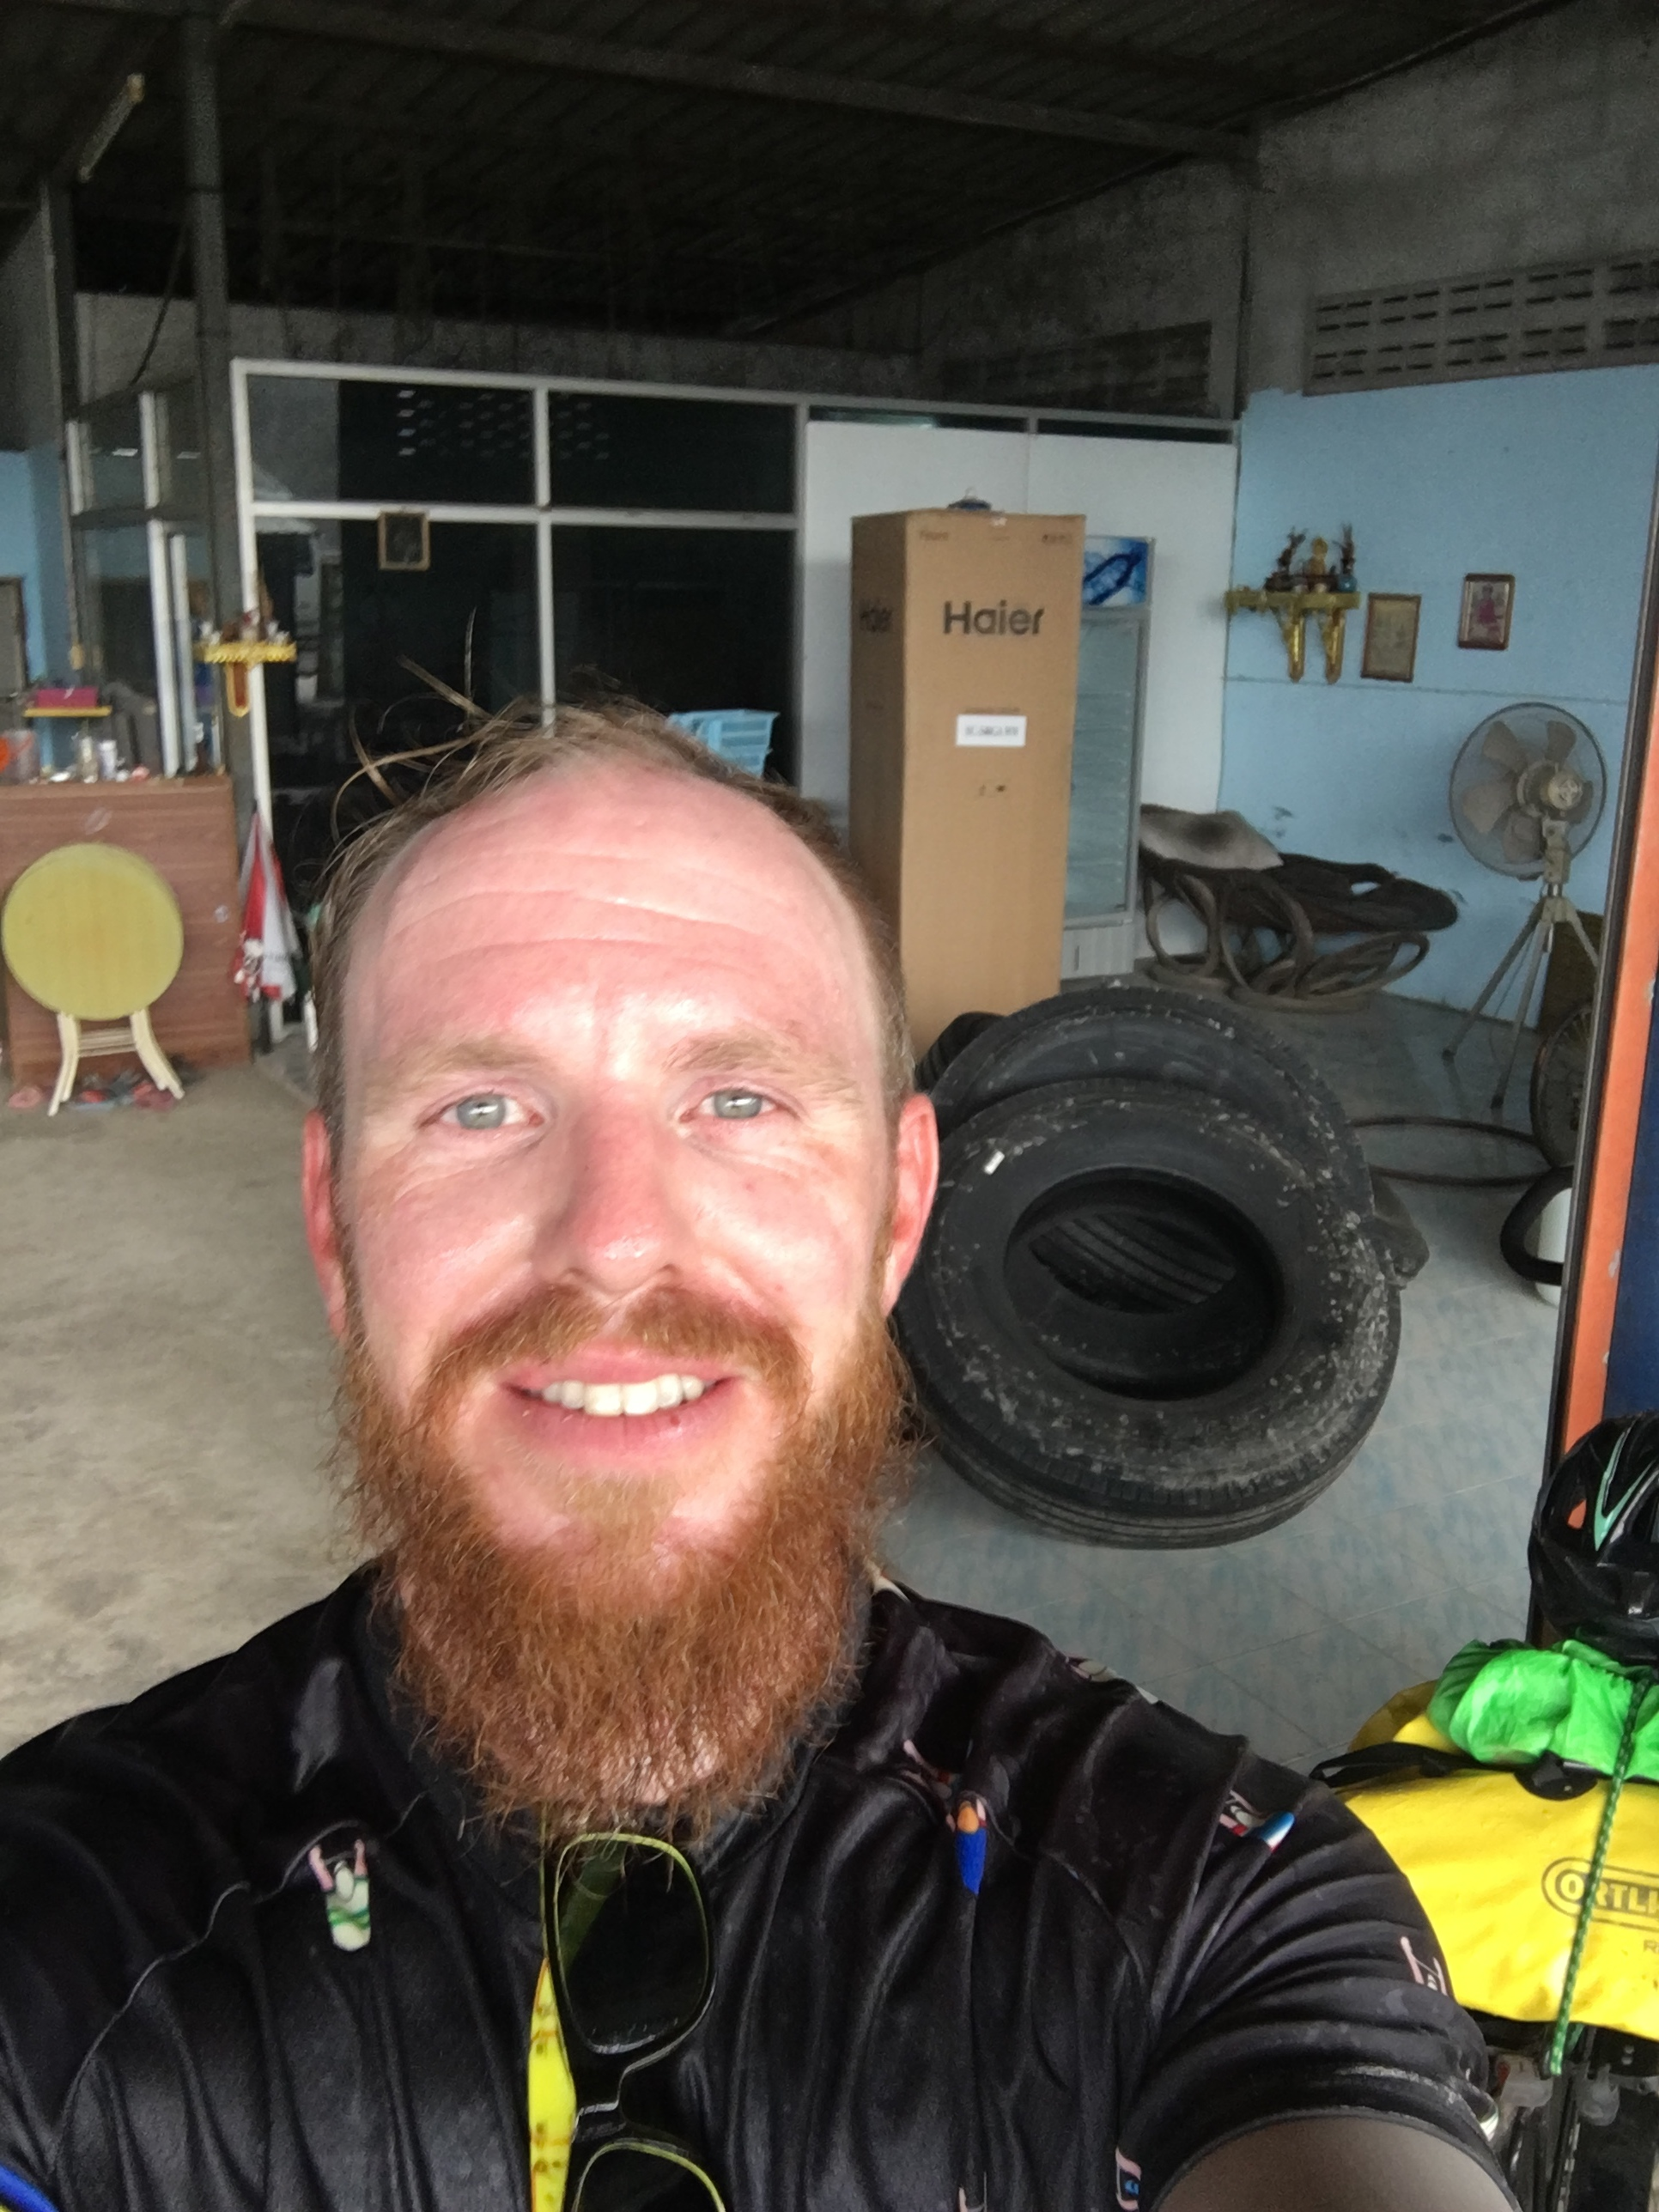 Out of the torrential rain in a kind mans mechanic workshop.